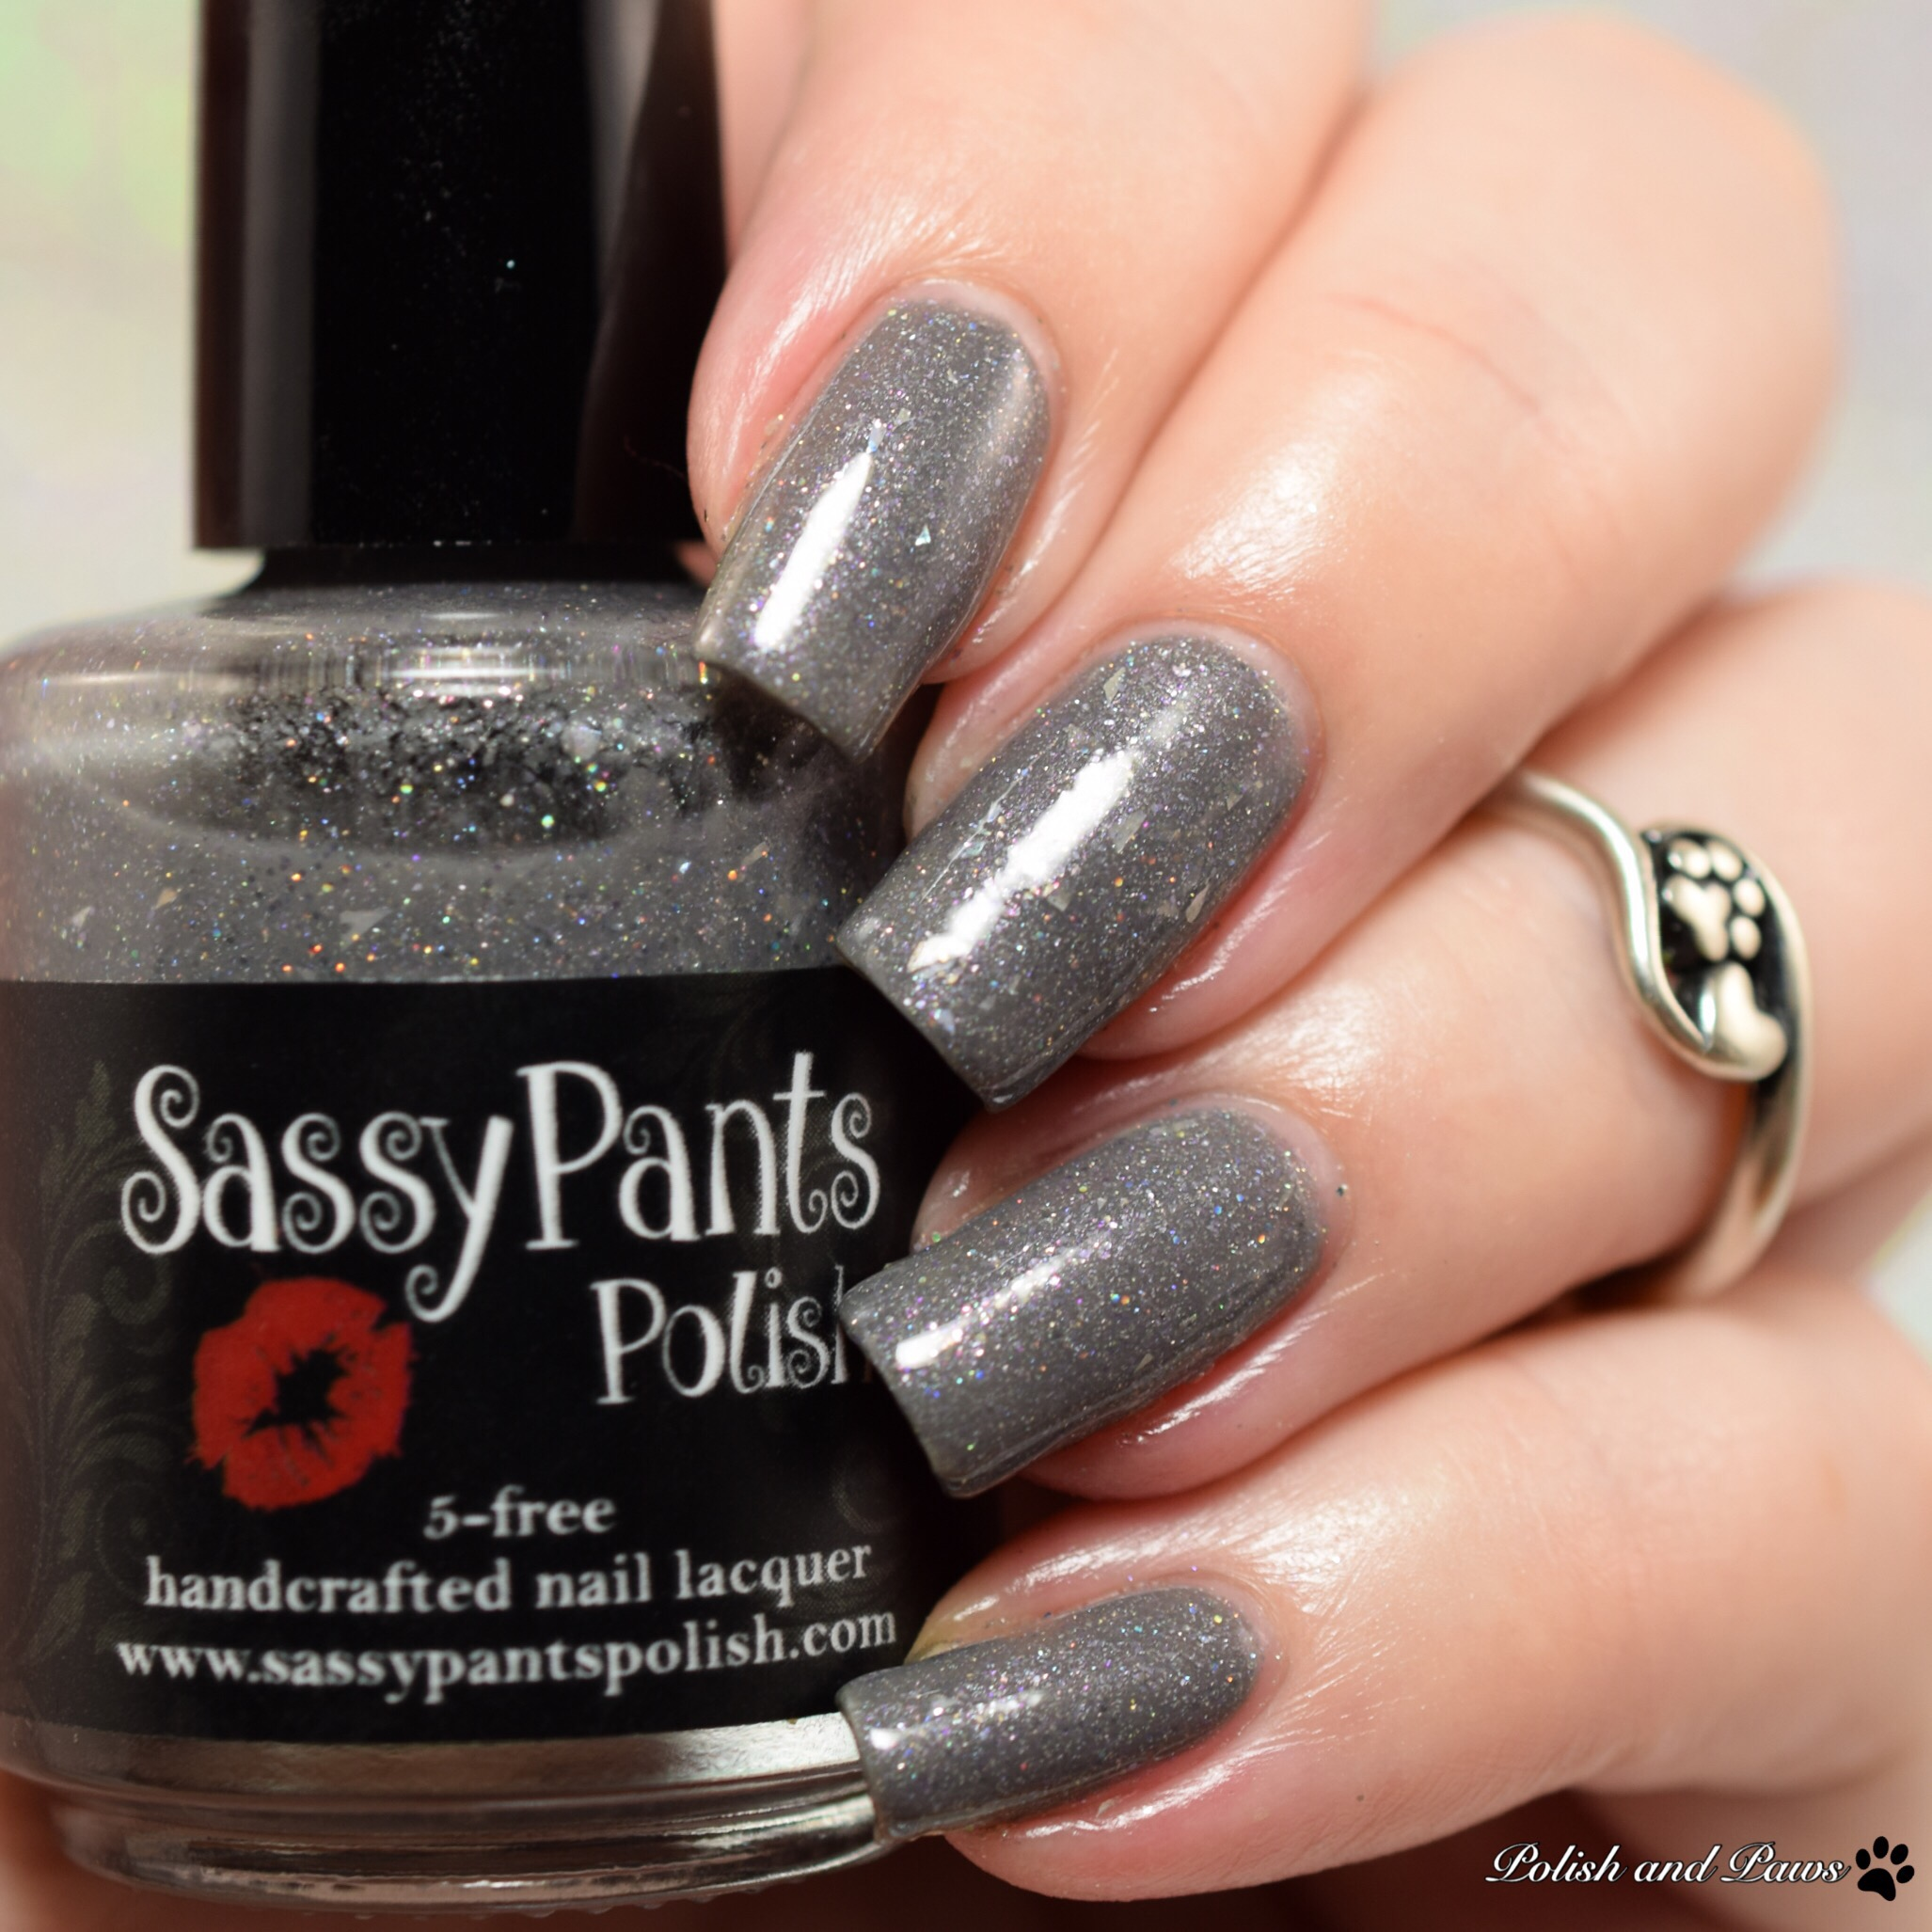 Sassy Pants Polish Not Even a Mouse